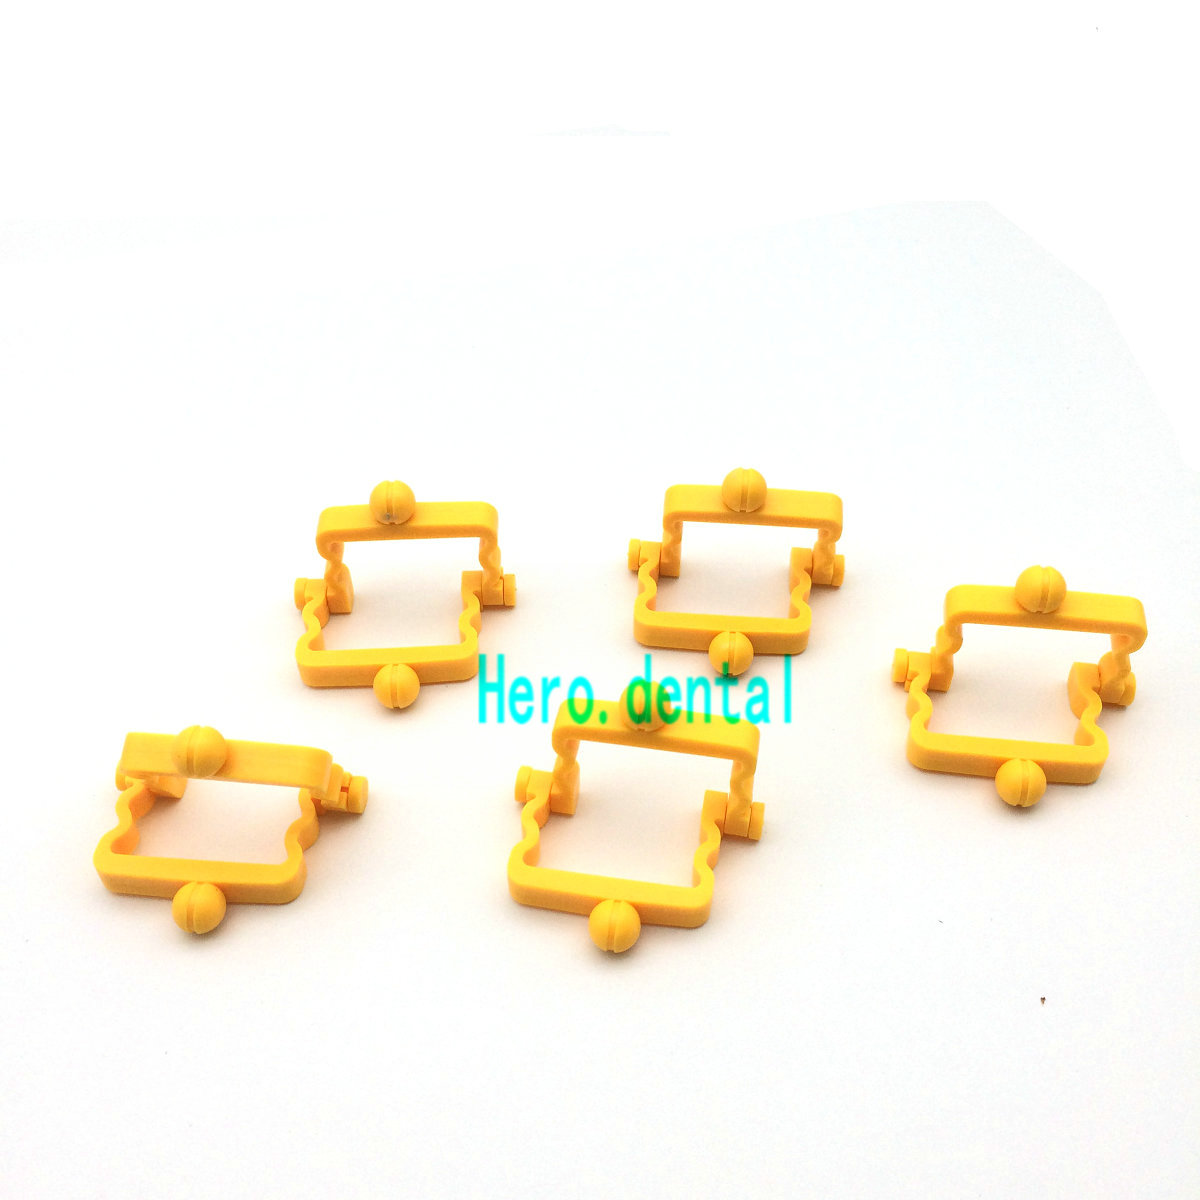 100 Sets/lot Articulator Dental Lab Technician Products Small Disposable Yellow Plastic Articulator